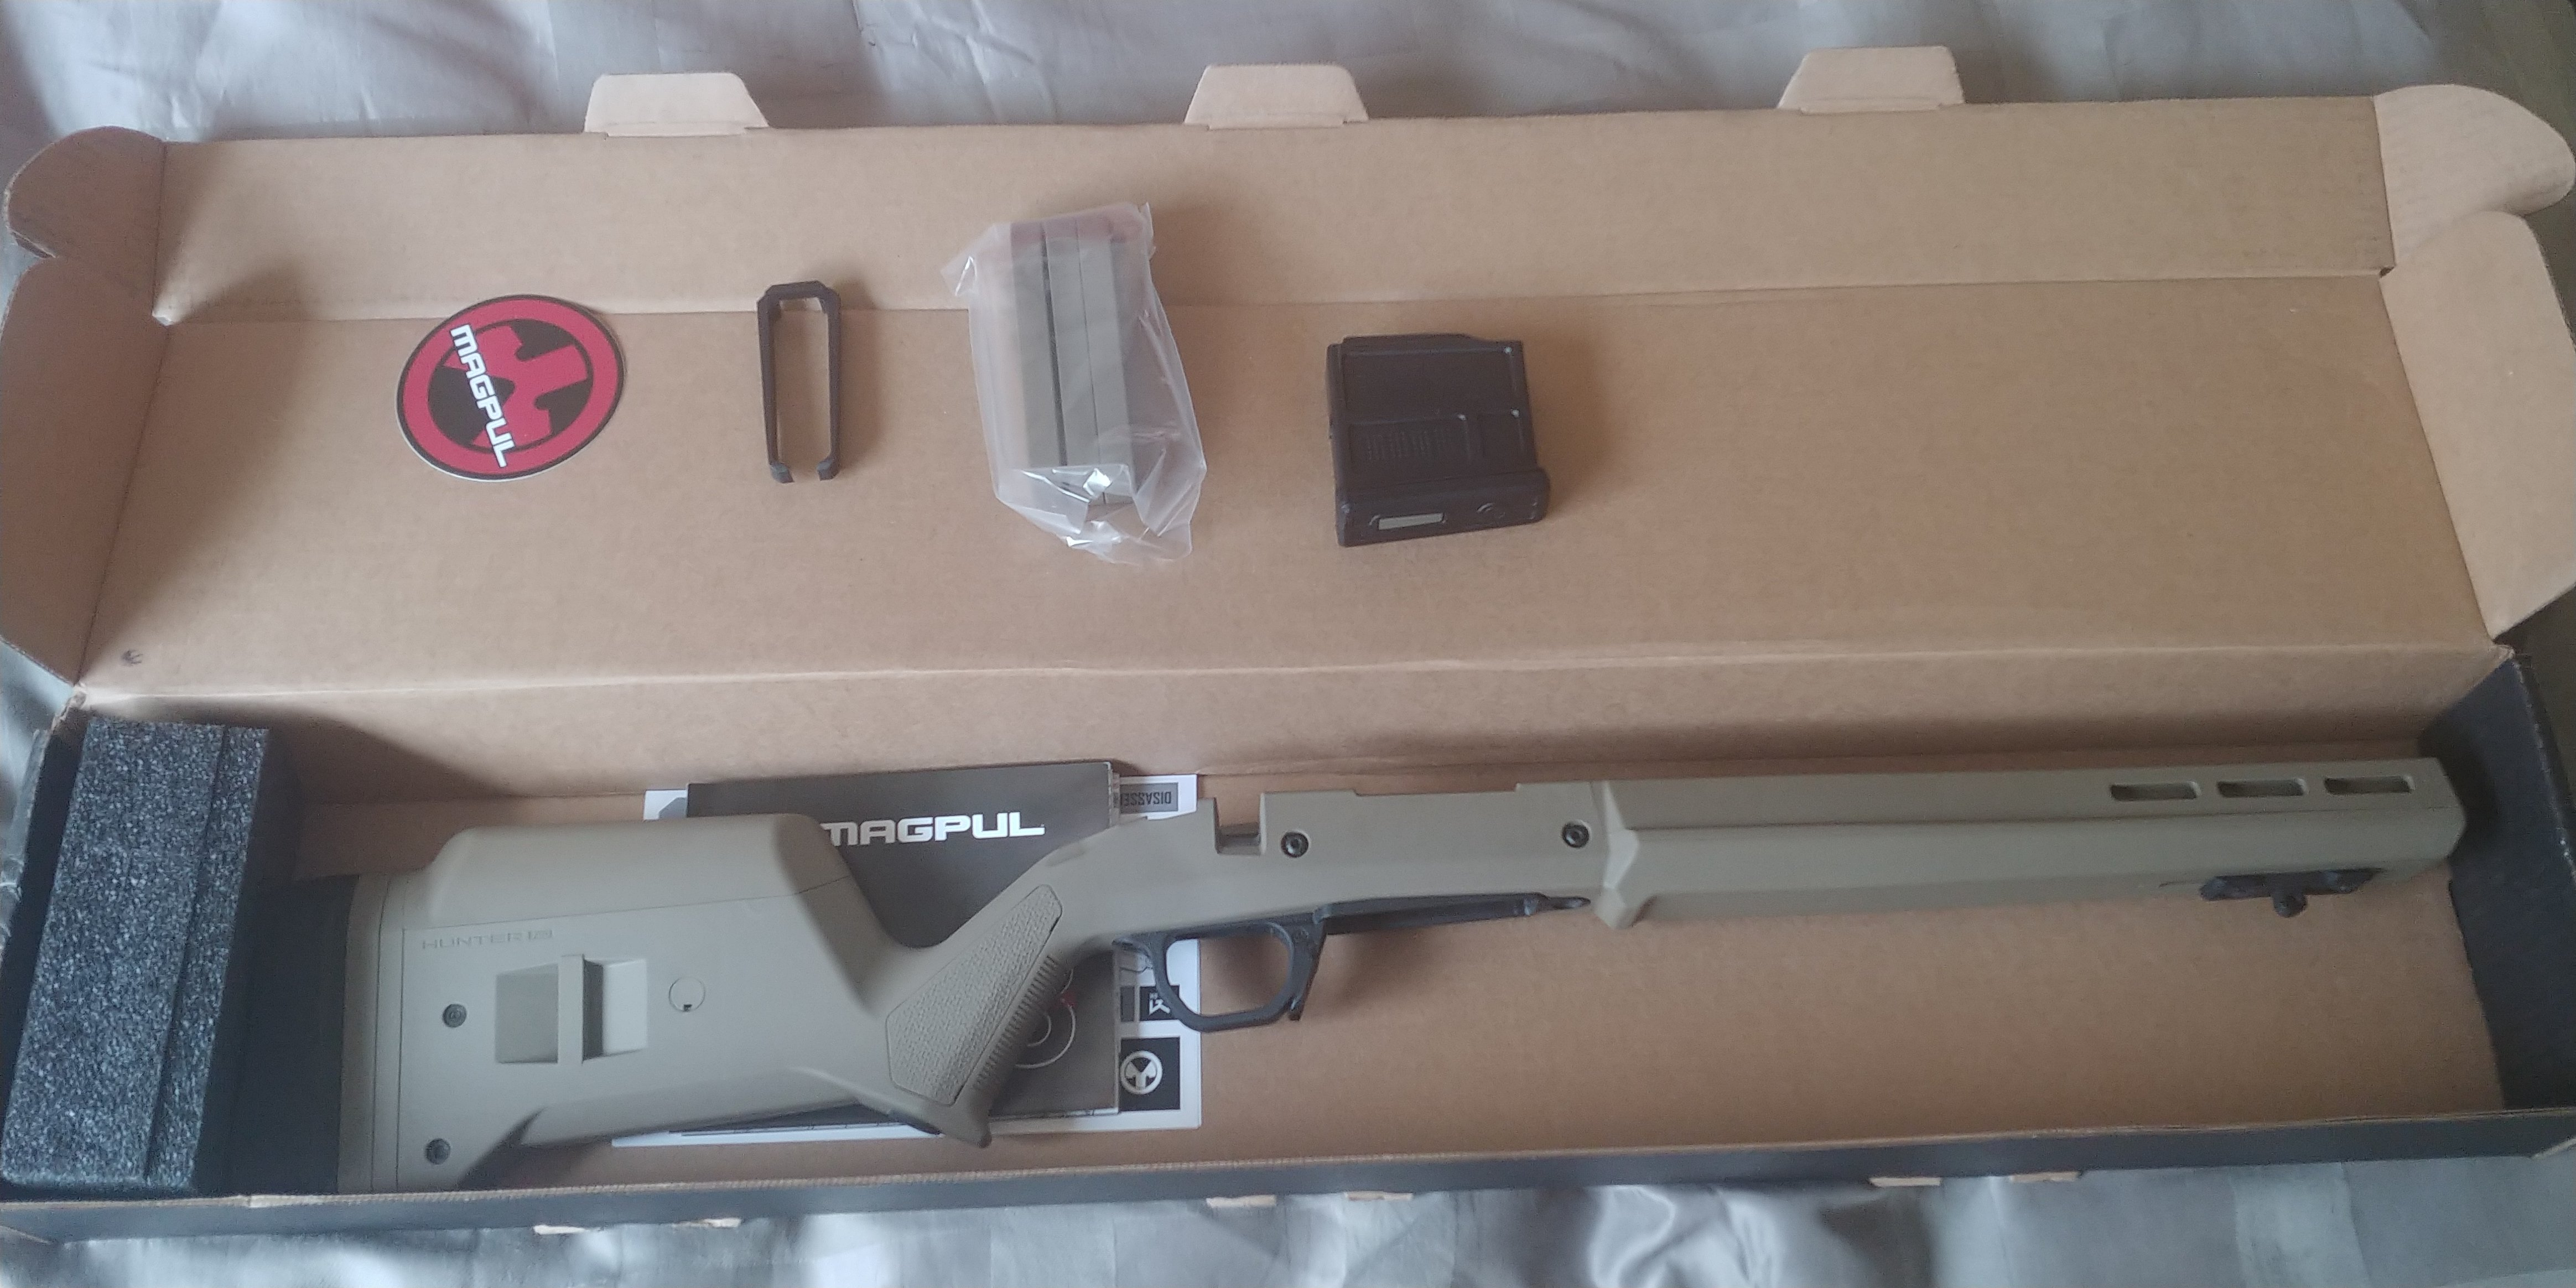 Magpul Hunter 700 SA stock - Classified Ads - CouesWhitetail